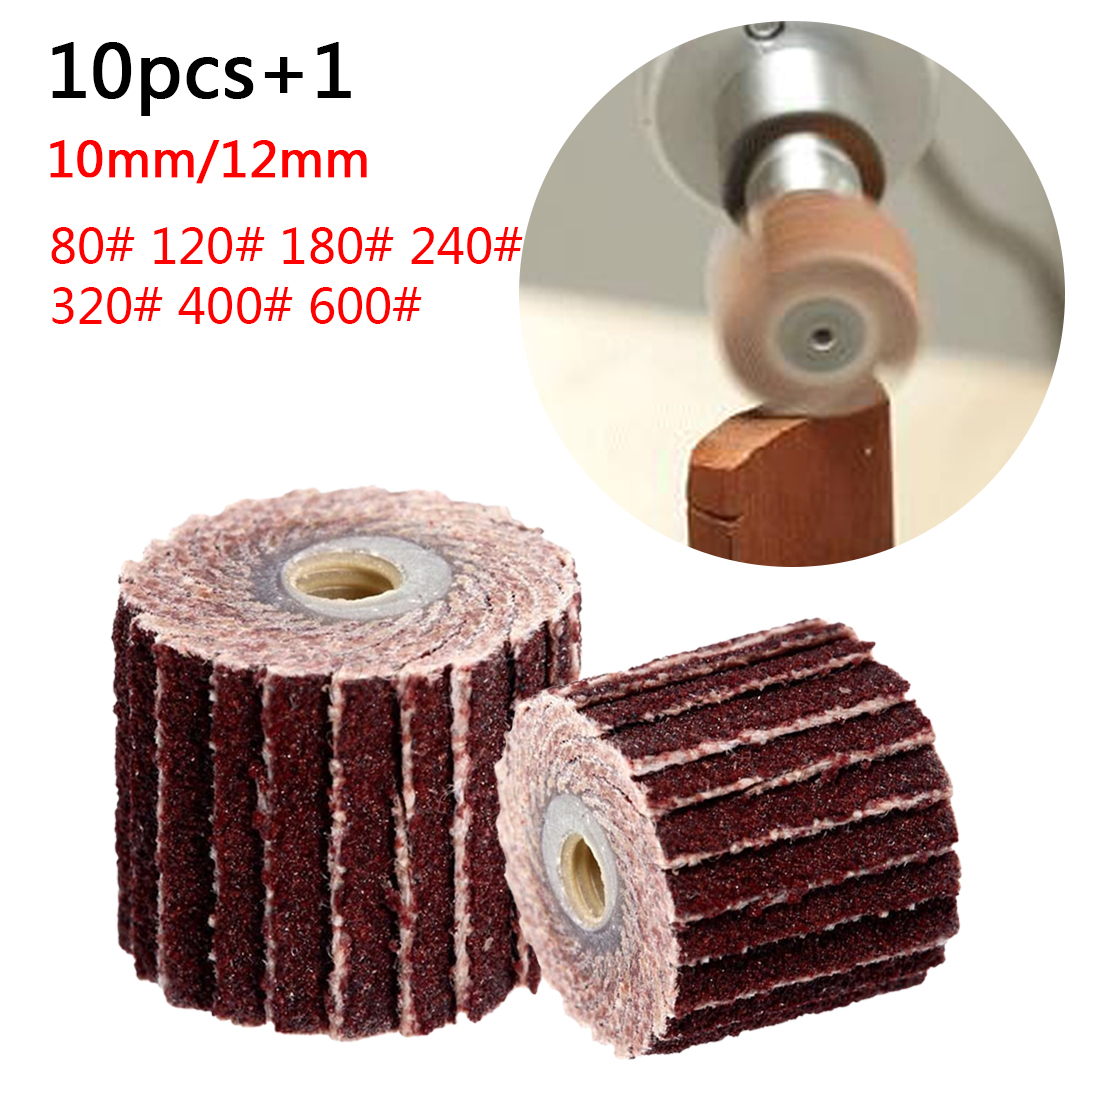 10Pcs Dremel Accessories Sanding Flap Disc Grinding Sanding Flap Wheels Brush Sand Rotary Tool 10 X 10x 3mm